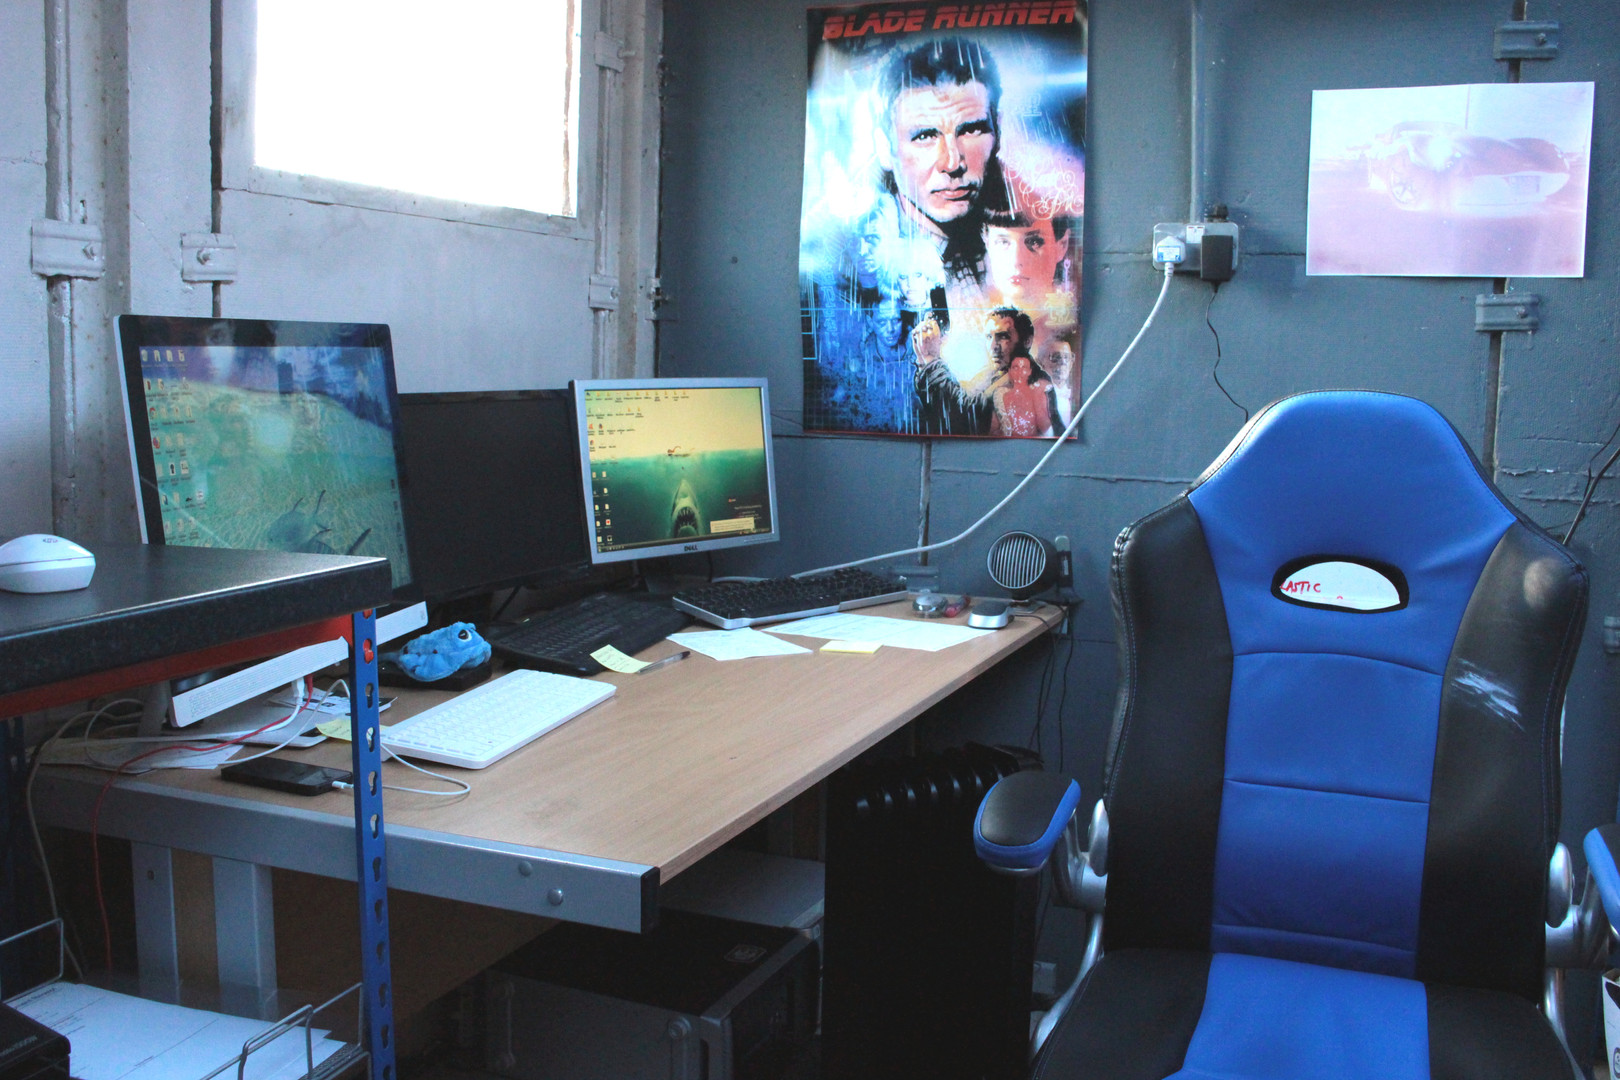 The workstation with cool BLADERUNNER poster